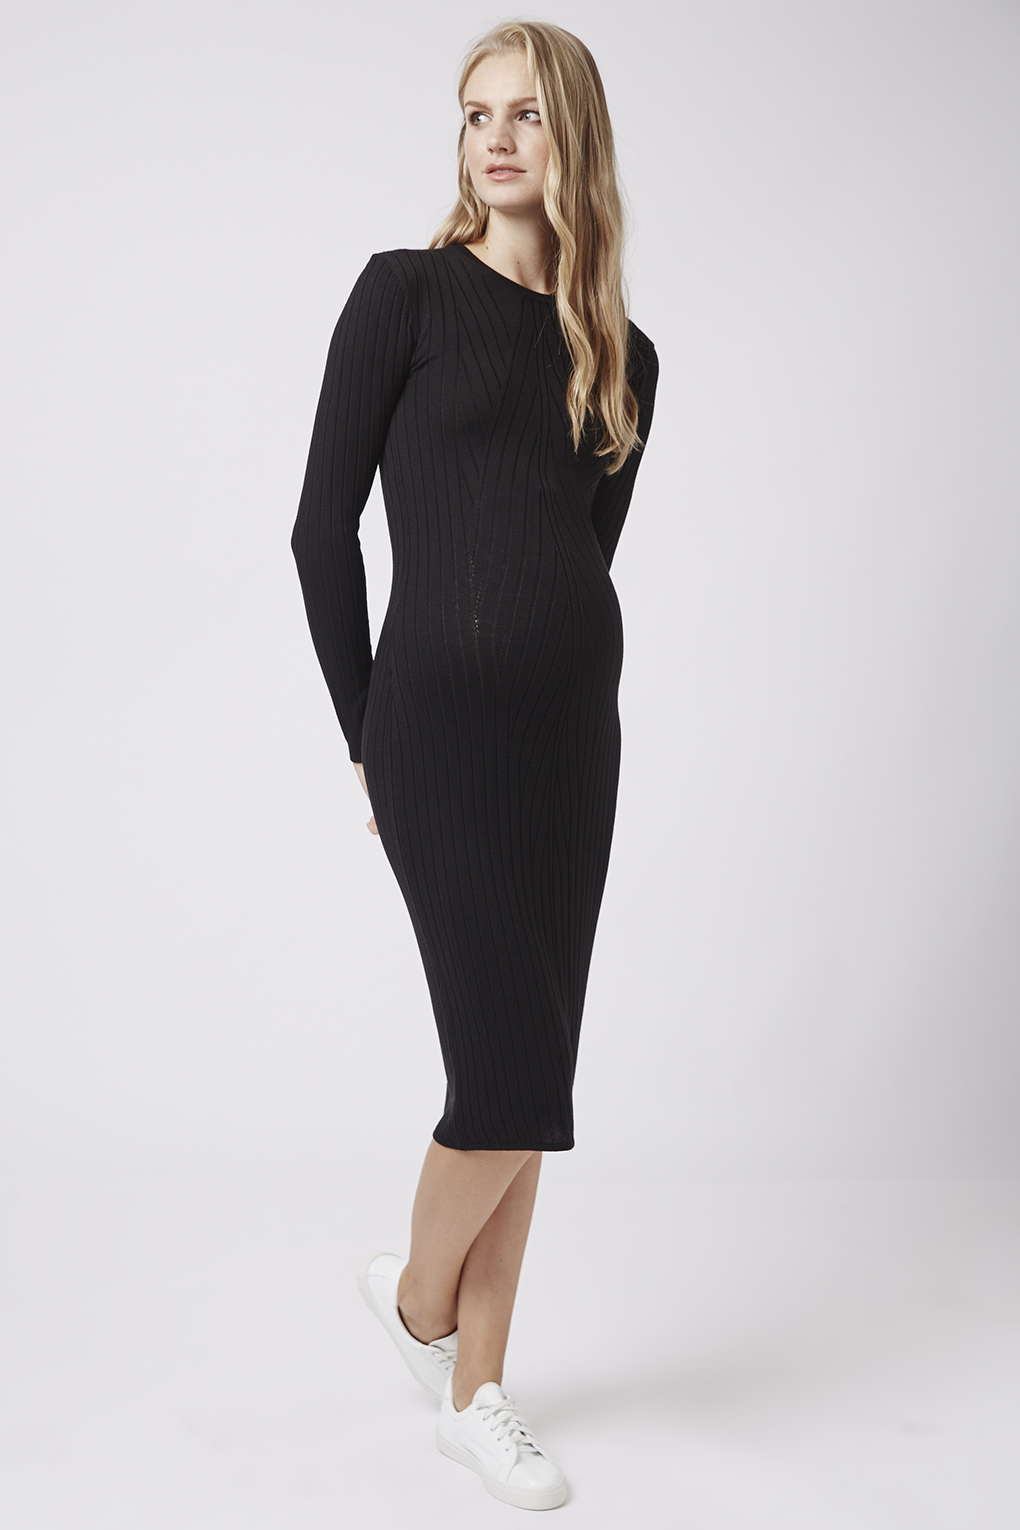 Topshop maternity travelling rib dress in black lyst gallery ombrellifo Choice Image